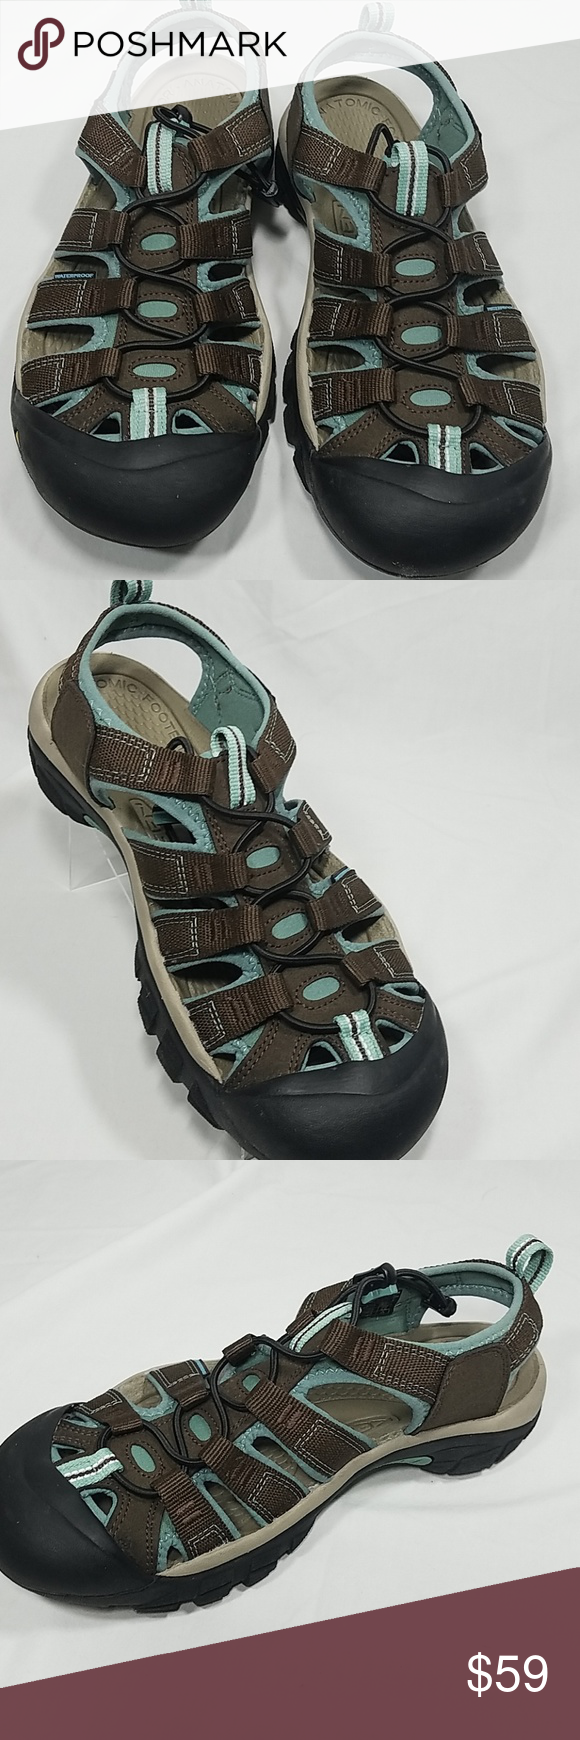 c77a5129da1fe NWOT KEEN Original Sport Sandal Newport H2 Sz 8M New without tags - unworn.  Great sandal from KEEN - Newport H2 Color  Brown  Gray Cut-out design